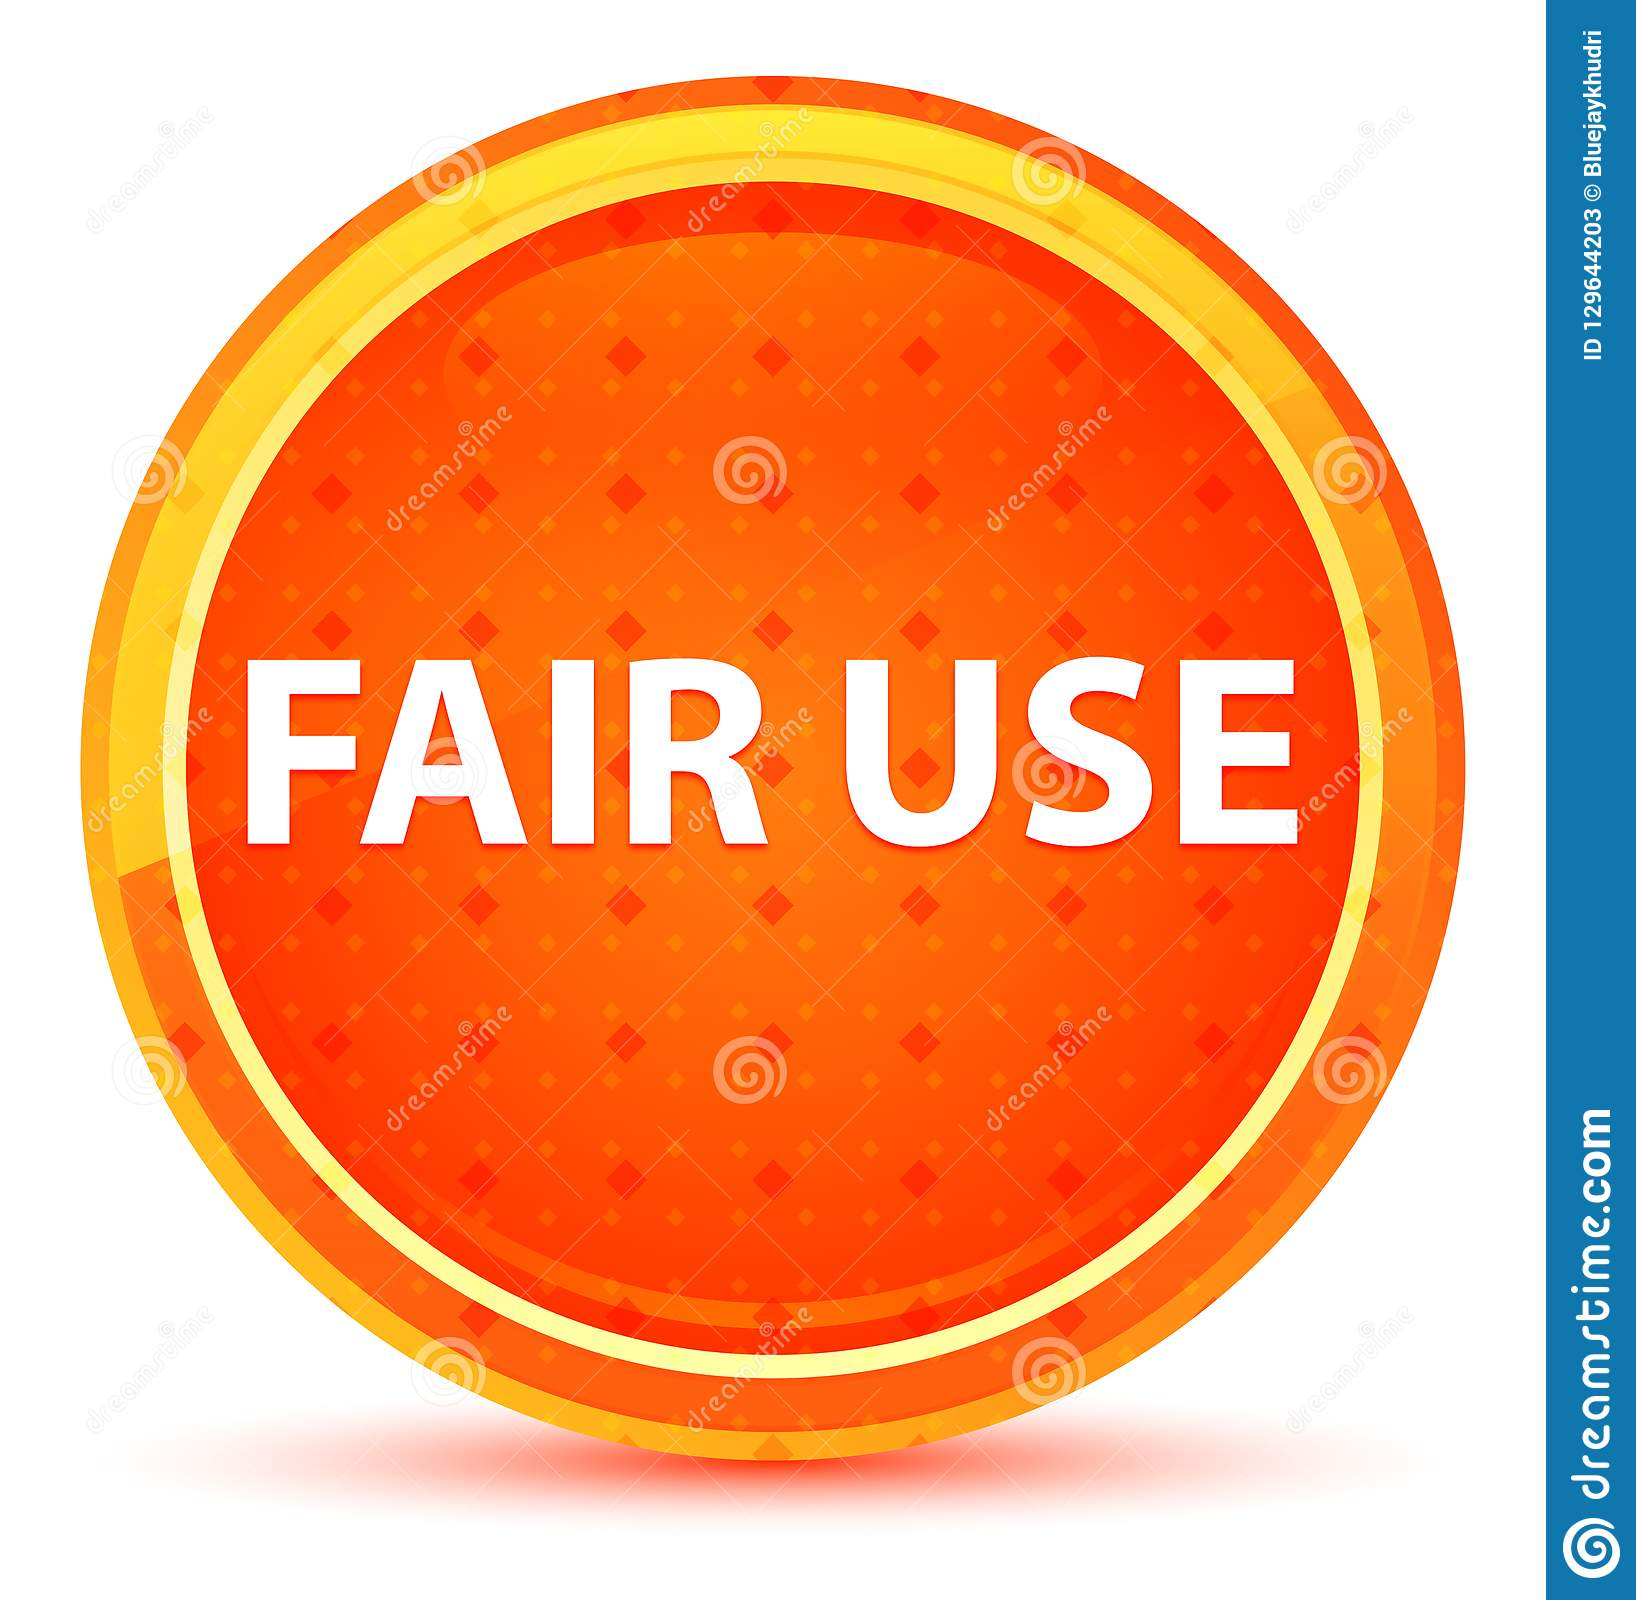 Fair Use Natural Orange Round Button